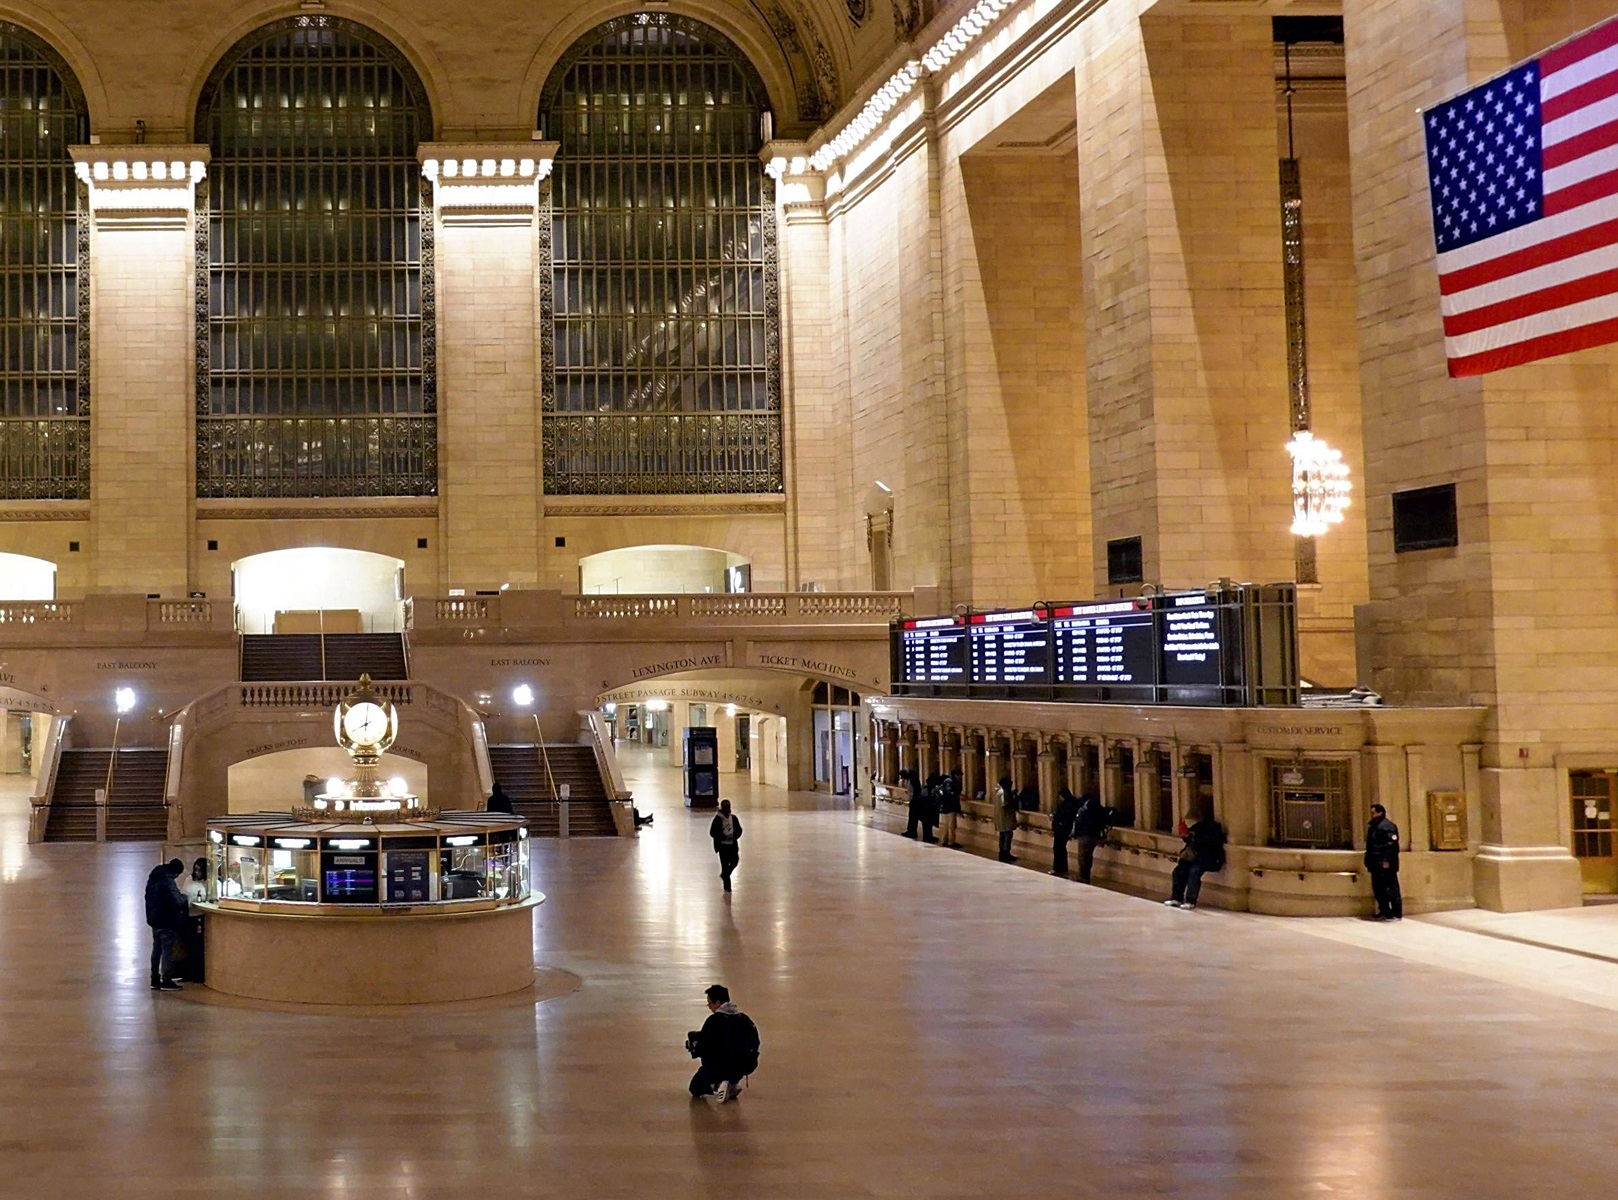 Quite Grand Central Station is pictured in New York in the night March 22, 2020. New York. Gov. Andrew Cuomo has ordered New Yorkers to stay home to slow the new coronavirus pandemic from 22th night. ( The Yomiuri Shimbun )